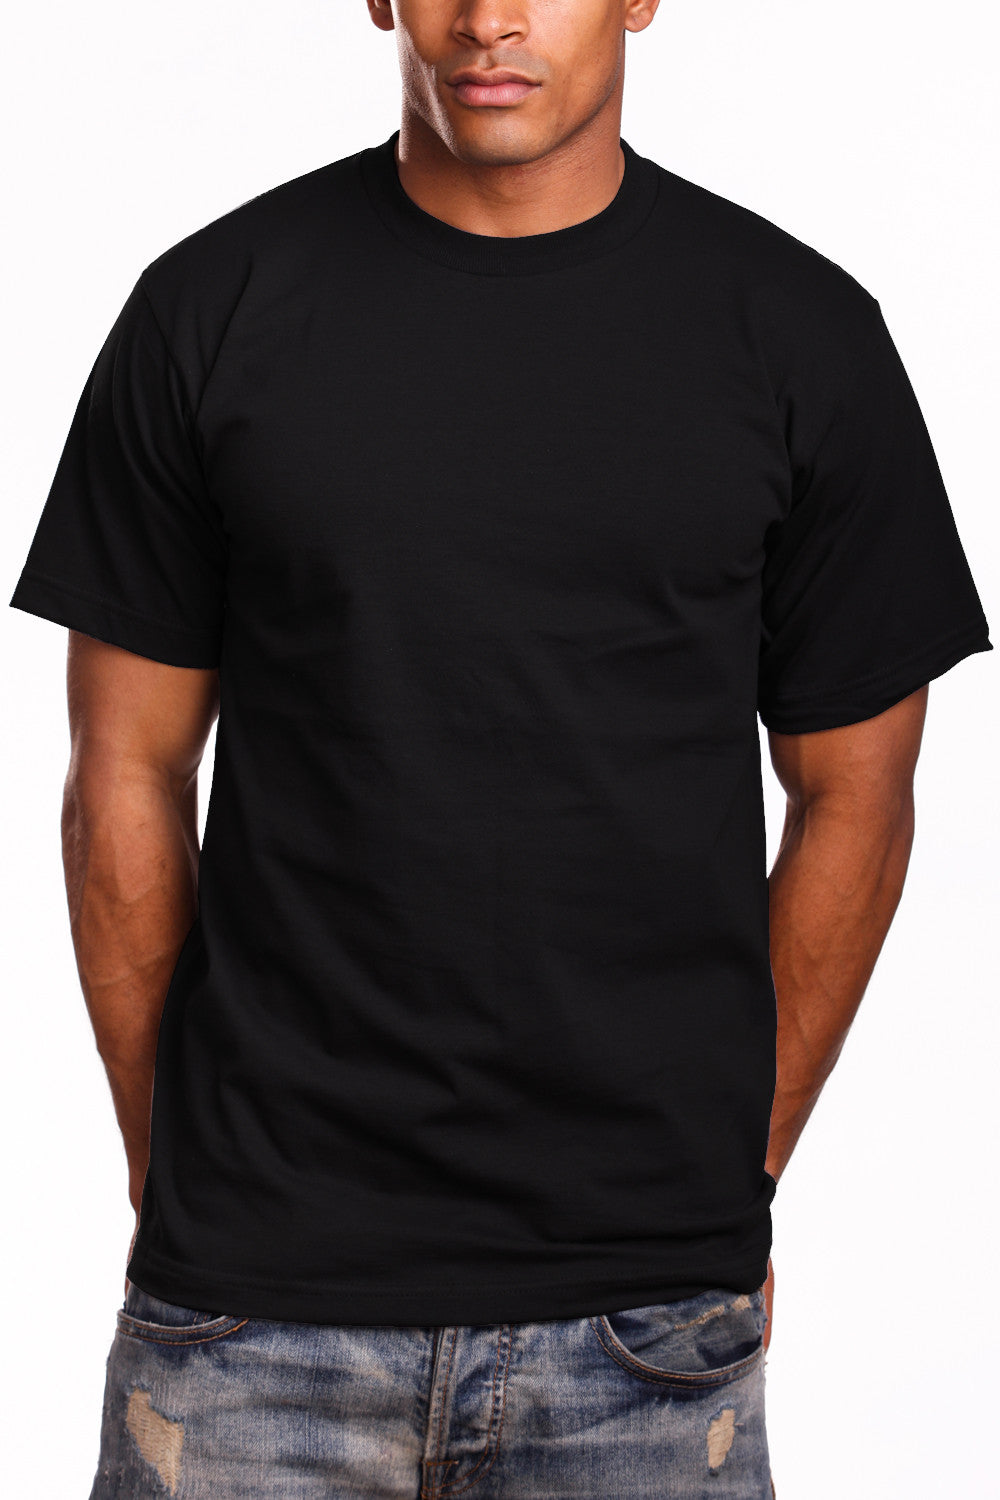 Athletic Fit Black T-Shirts Activewear Tee Shirts